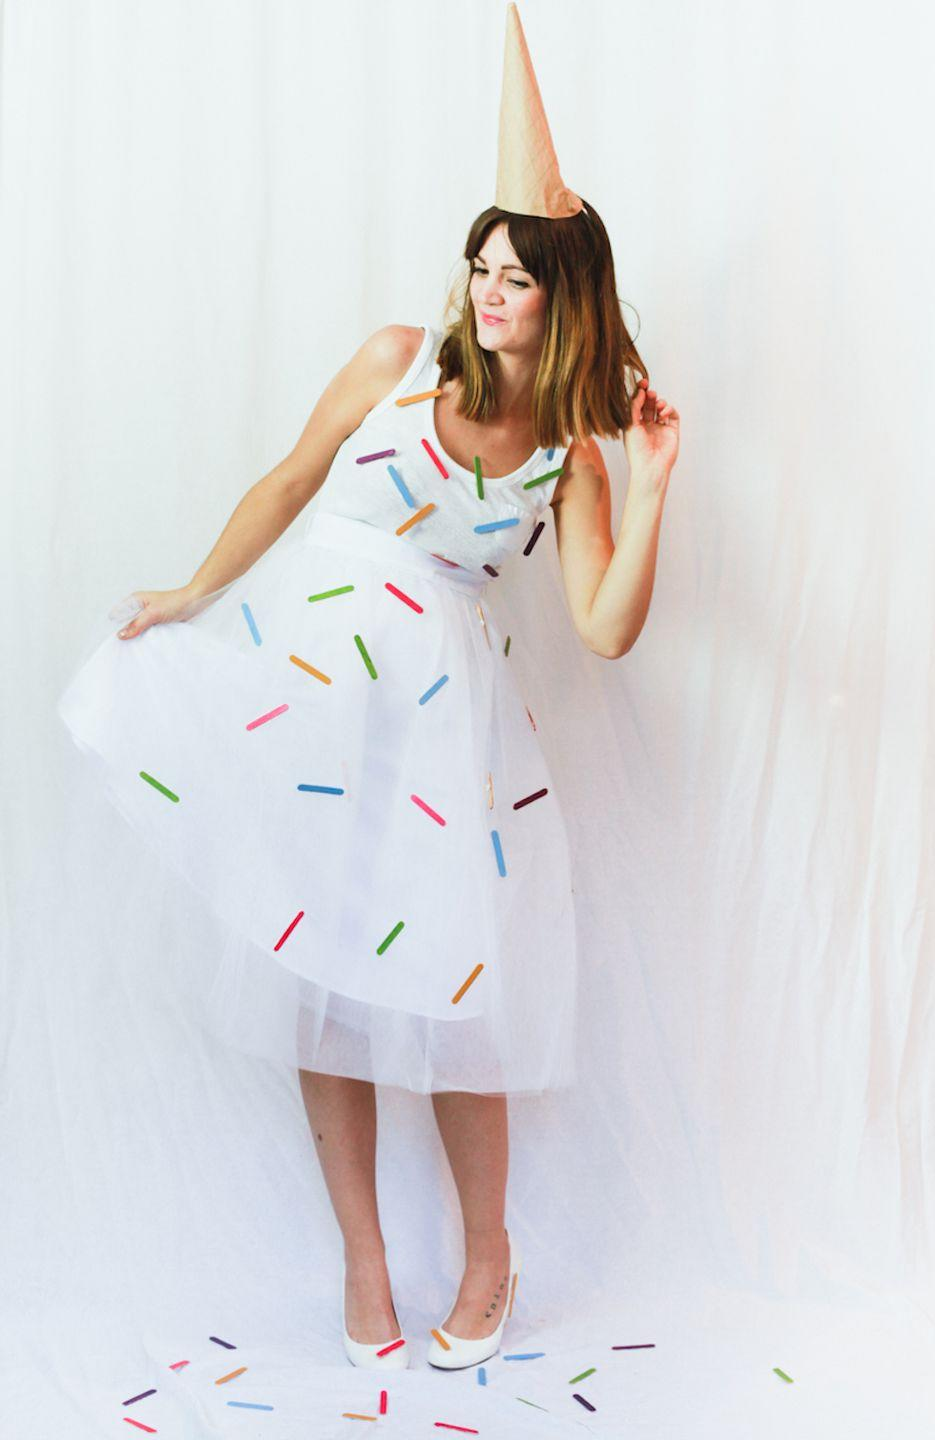 "<p>Bring a taste of summer to October with this whimsical ice cream cone costume, complete with sprinkles on top.</p><p><strong>Get the tutorial at <a href=""http://treasuresandtravelsblog.com/blog/2014/10/24/halloween-costumes-ice-cream-cotton-candy"" rel=""nofollow noopener"" target=""_blank"" data-ylk=""slk:Treasures & Travels"" class=""link rapid-noclick-resp"">Treasures & Travels</a>.</strong></p><p><strong>What you'll need: </strong>white dress ($27; <a href=""https://www.amazon.com/Dantiya-Womens-Sleeve-Elegant-X-Large/dp/B012JN2DKU/"" rel=""nofollow noopener"" target=""_blank"" data-ylk=""slk:amazon.com"" class=""link rapid-noclick-resp"">amazon.com</a>), multicolored mini popsicle sticks ($4; <a href=""https://www.amazon.com/Multicraft-Imports-Mini-Popsicle-Sticks-Colored/dp/B007F0URHE/"" rel=""nofollow noopener"" target=""_blank"" data-ylk=""slk:amazon.com"" class=""link rapid-noclick-resp"">amazon.com</a>), brown paper ($13; <a href=""https://www.amazon.com/Paper-Wrapping-Shipping-Covering-Recycled/dp/B0788YRV9V/ref=sr_1_4?s=arts-crafts&ie=UTF8&qid=1532010971&sr=1-4&keywords=brown+paper"" rel=""nofollow noopener"" target=""_blank"" data-ylk=""slk:amazon.com"" class=""link rapid-noclick-resp"">amazon.com</a>)</p>"